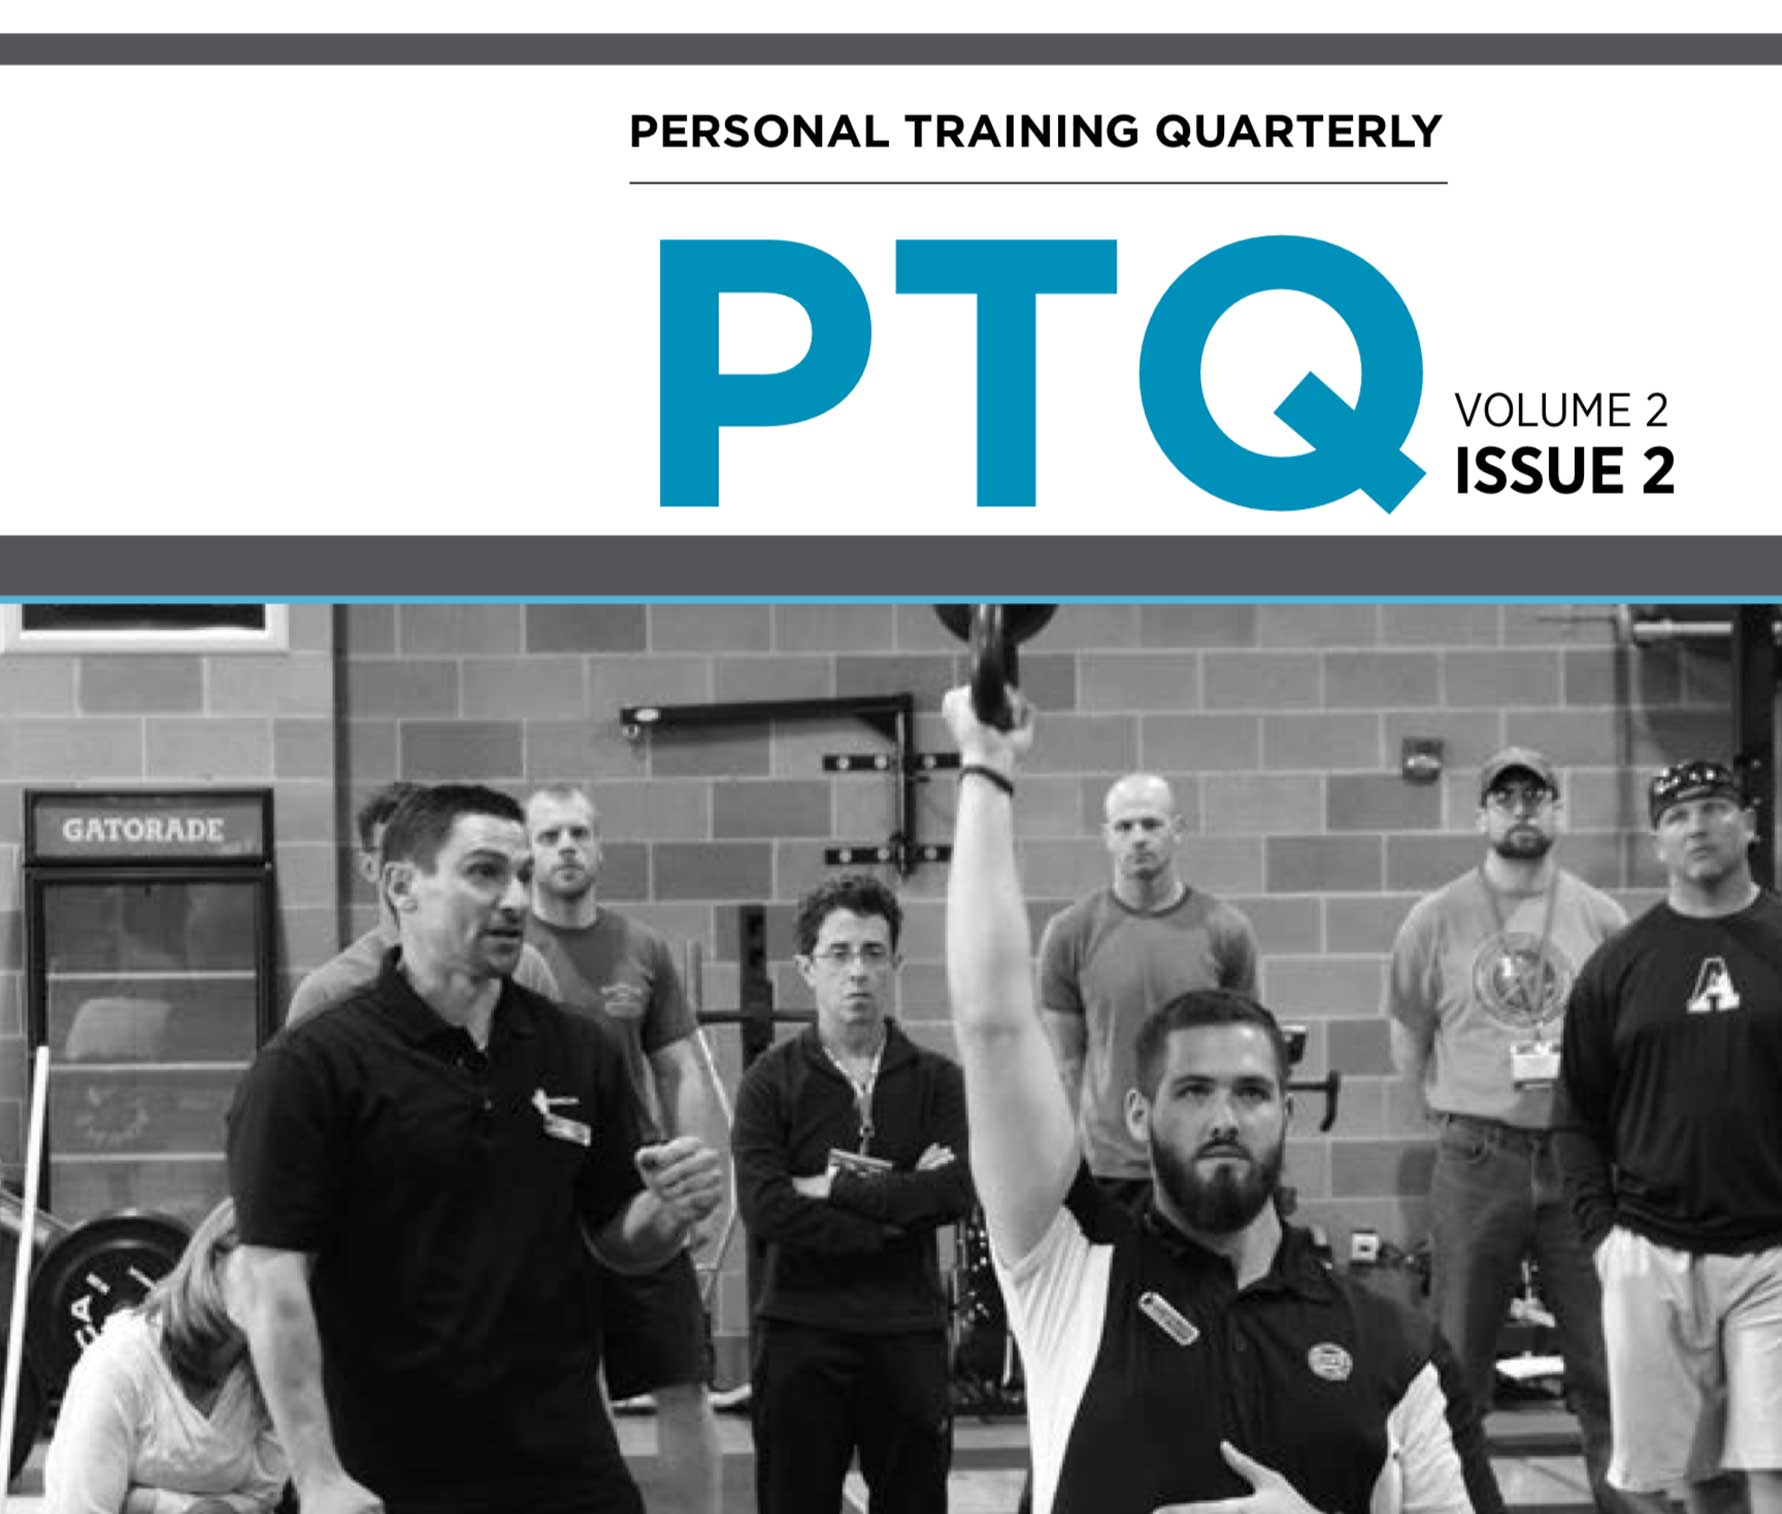 Personal Training Quarterly Vol. 2 - Issue 2